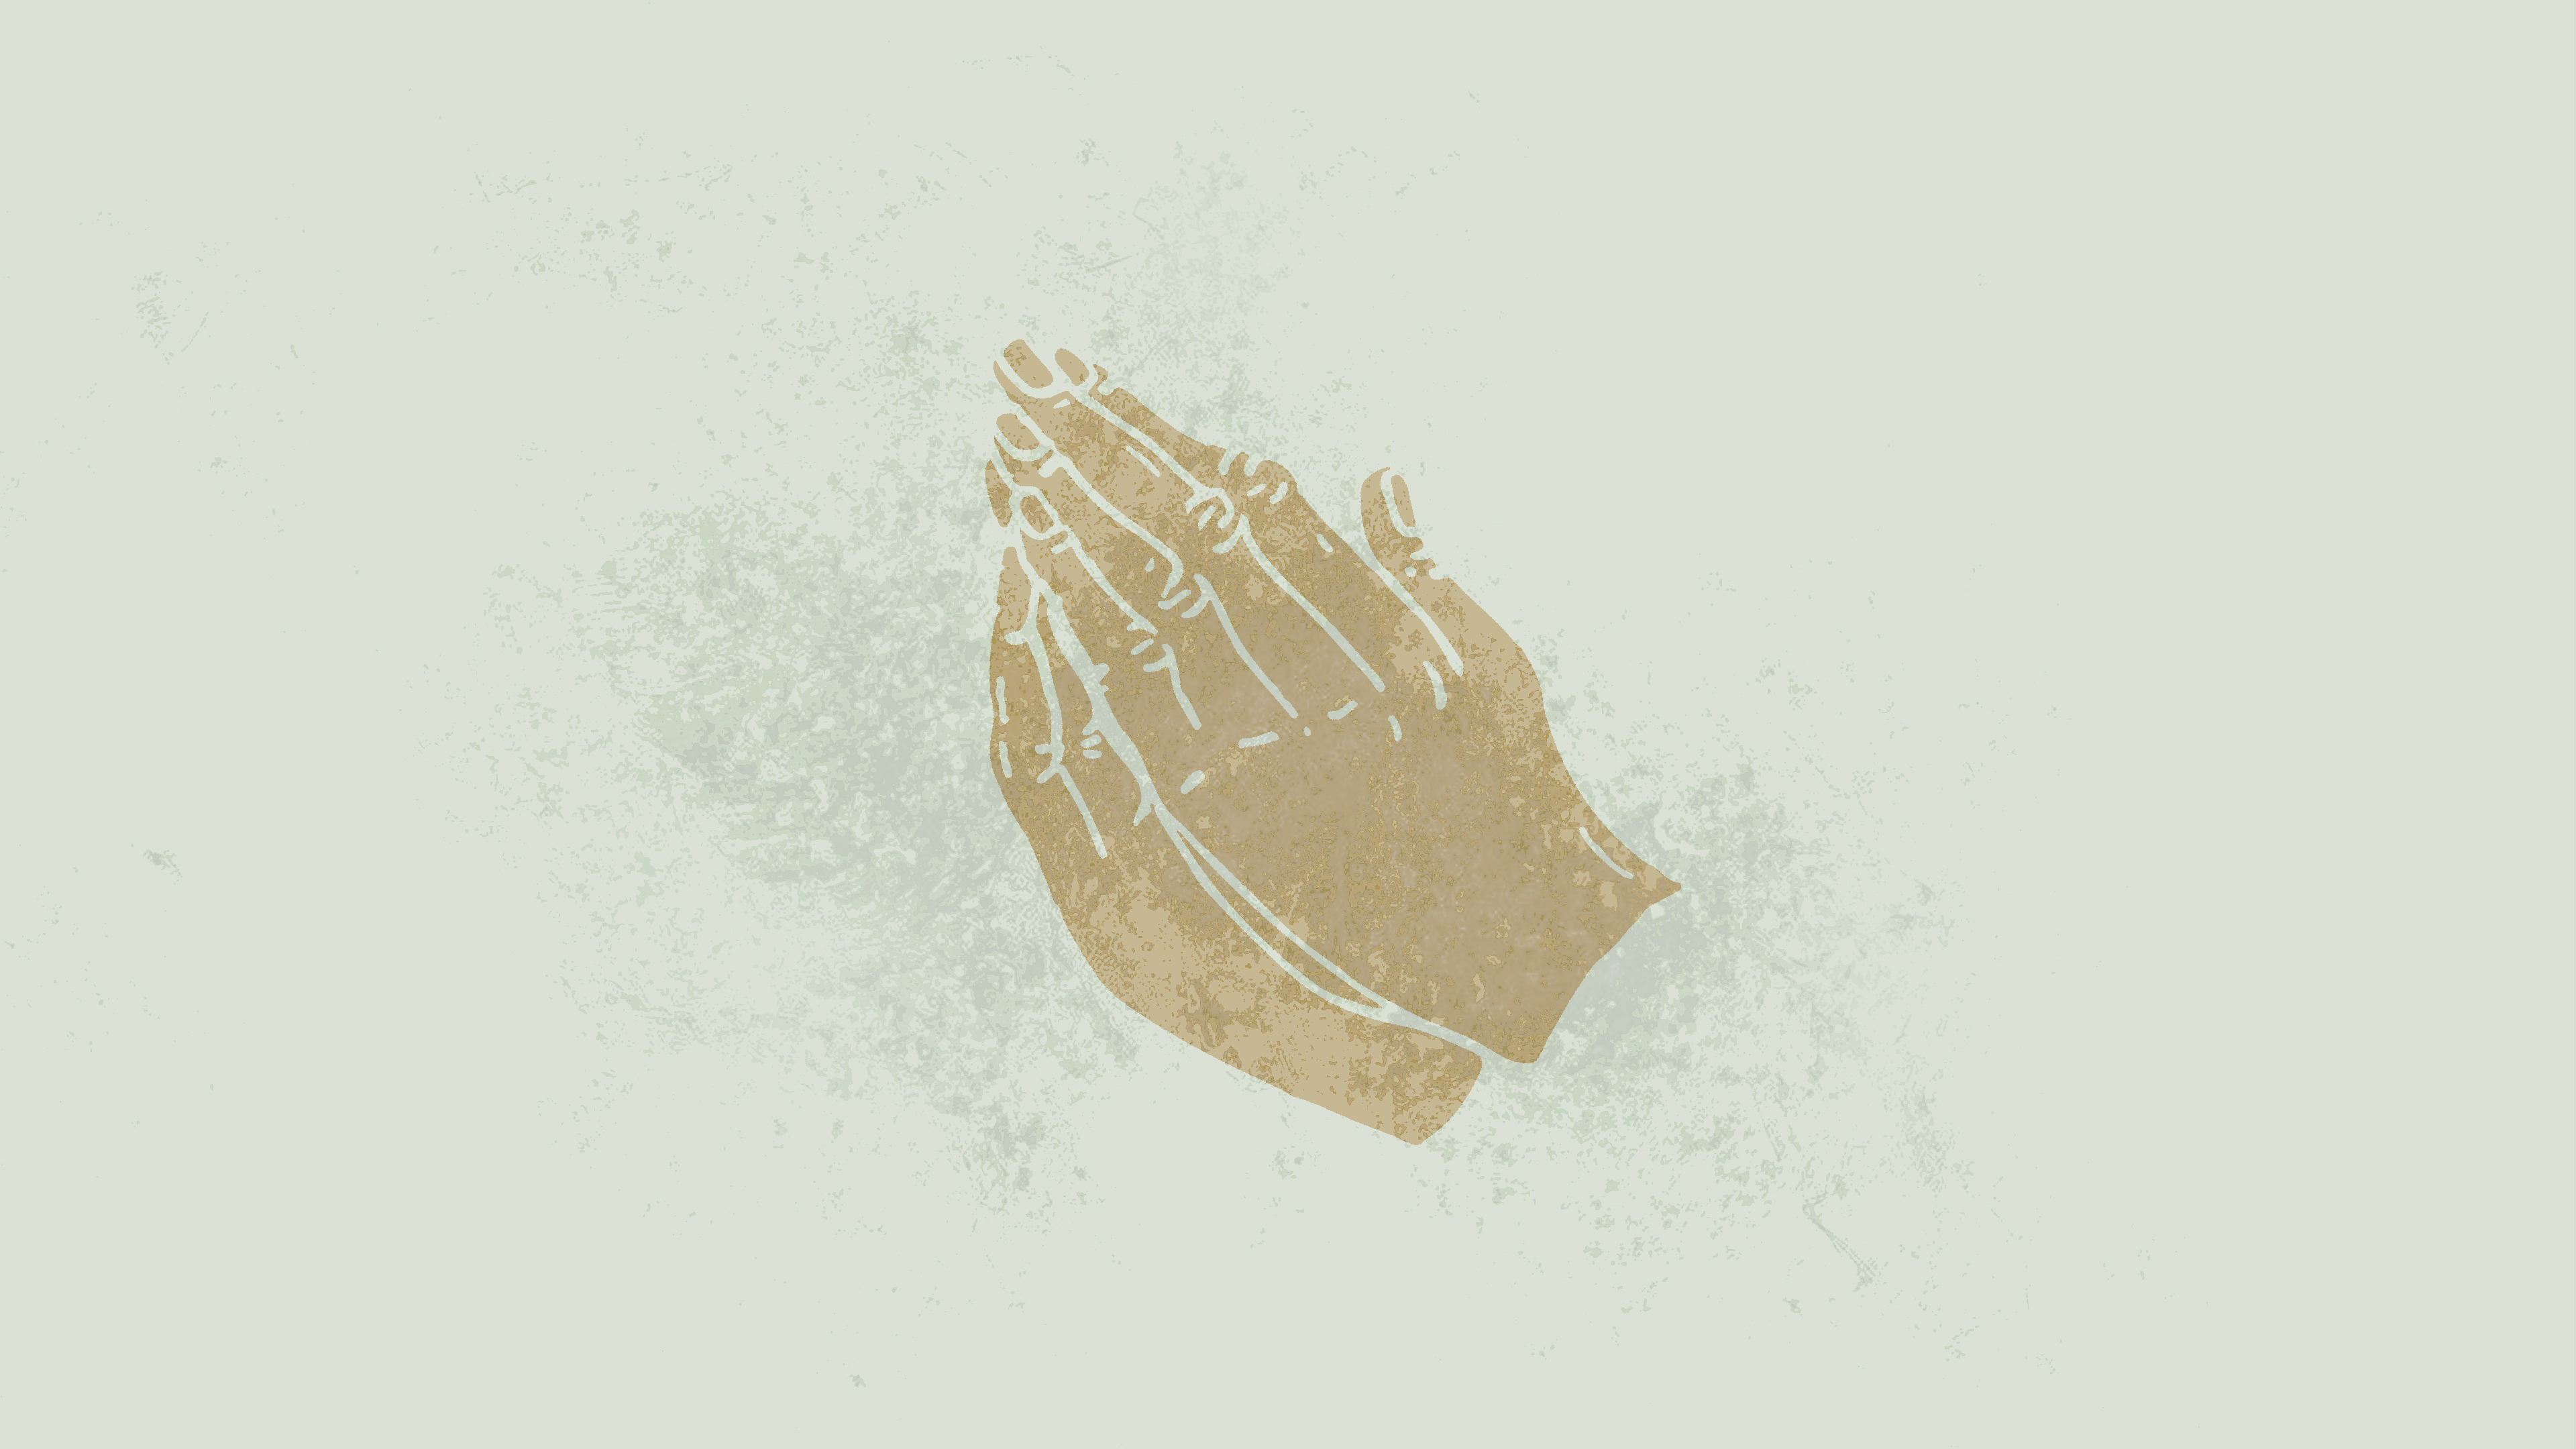 Hands of Glory. Prayer.